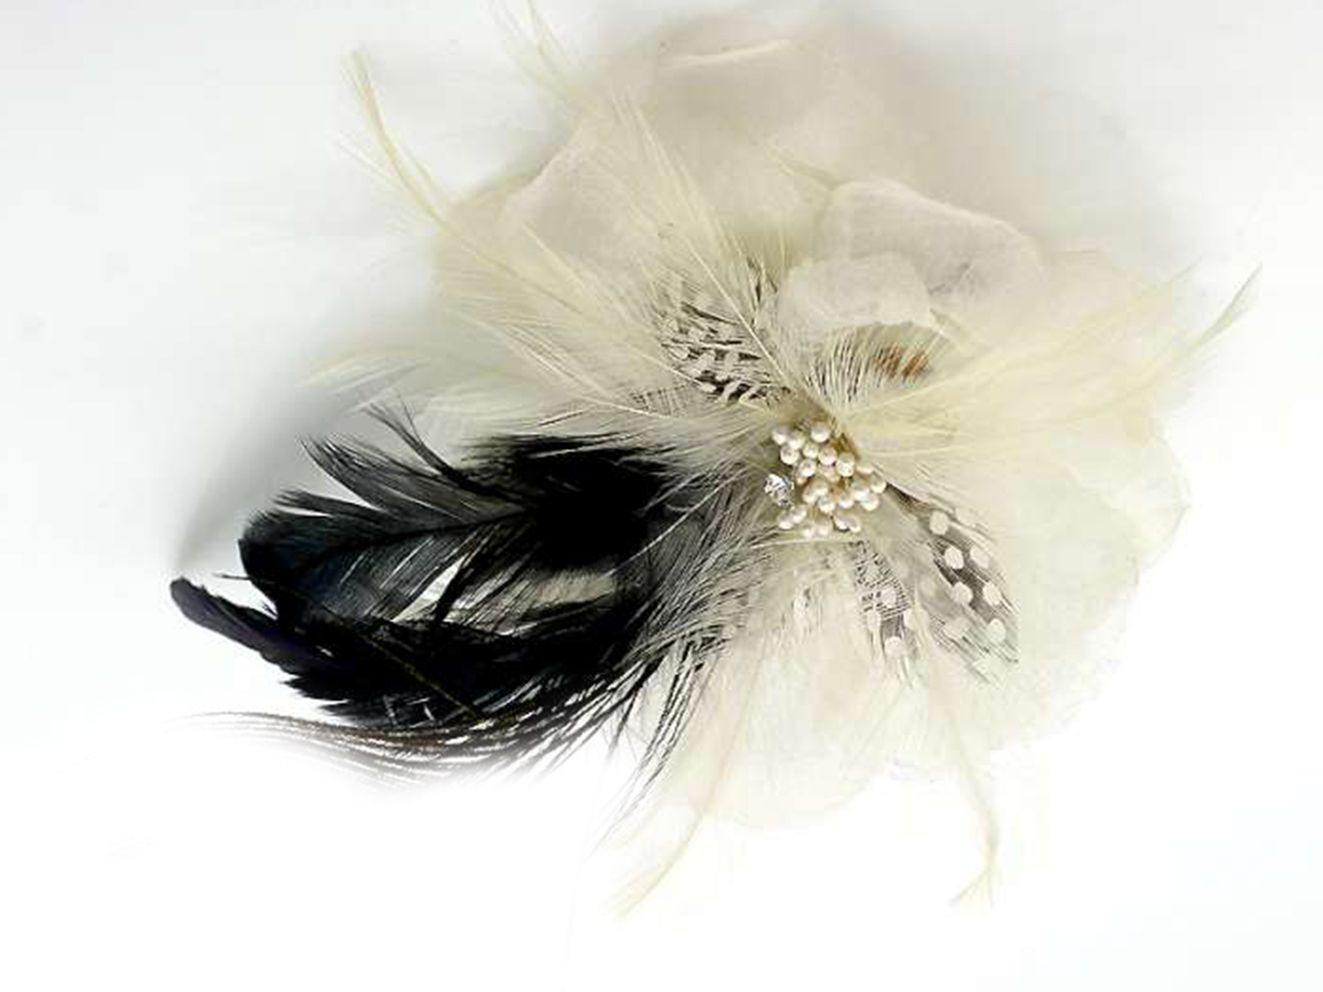 http://www.conmigolondon.co.uk/ekmps/shops/conmigo/images/bc9012-beautiful-white-fabric-flower-and-feather-hair-clip-brooch-%5b4%5d-22330-p.jpg